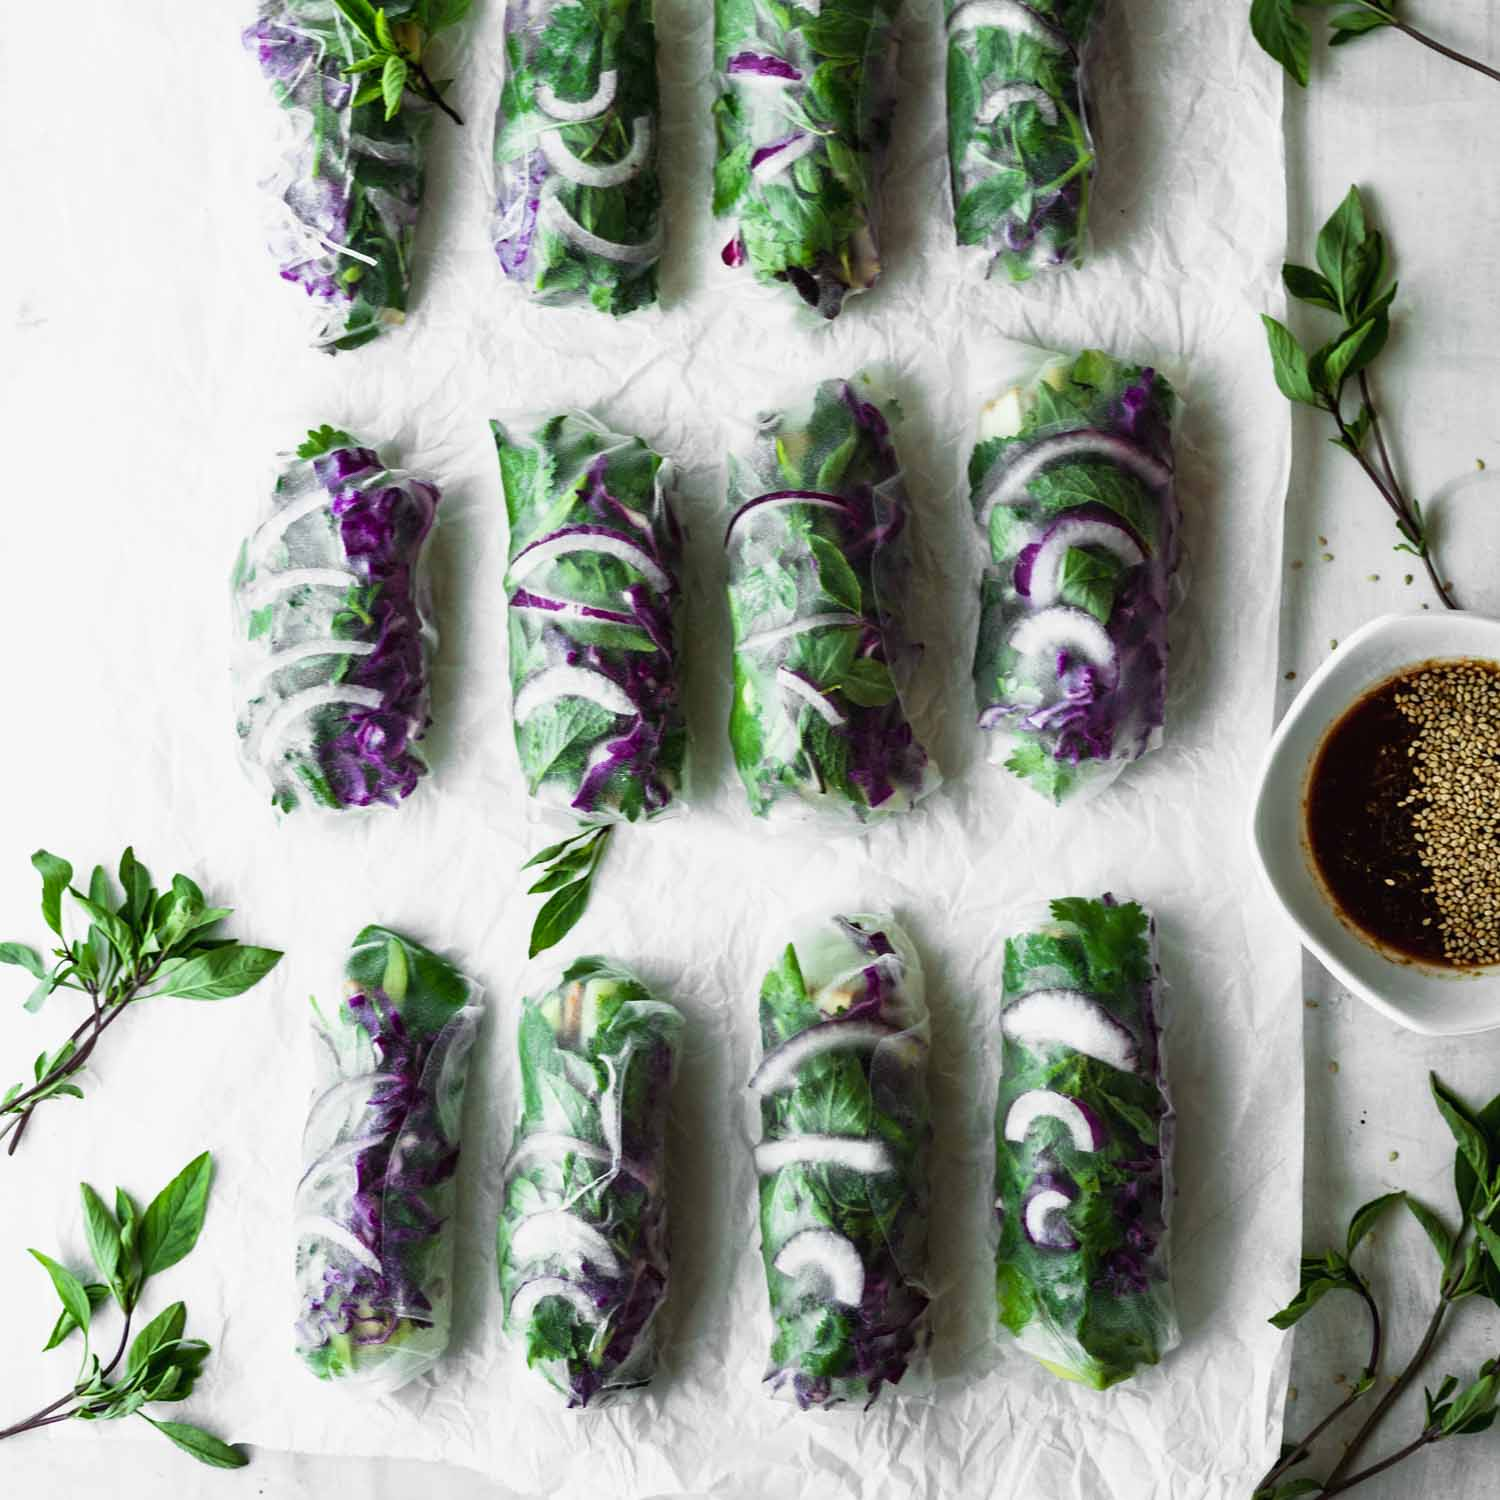 Easy Green & Purple Summer Rolls with Quick Dipping Sauce